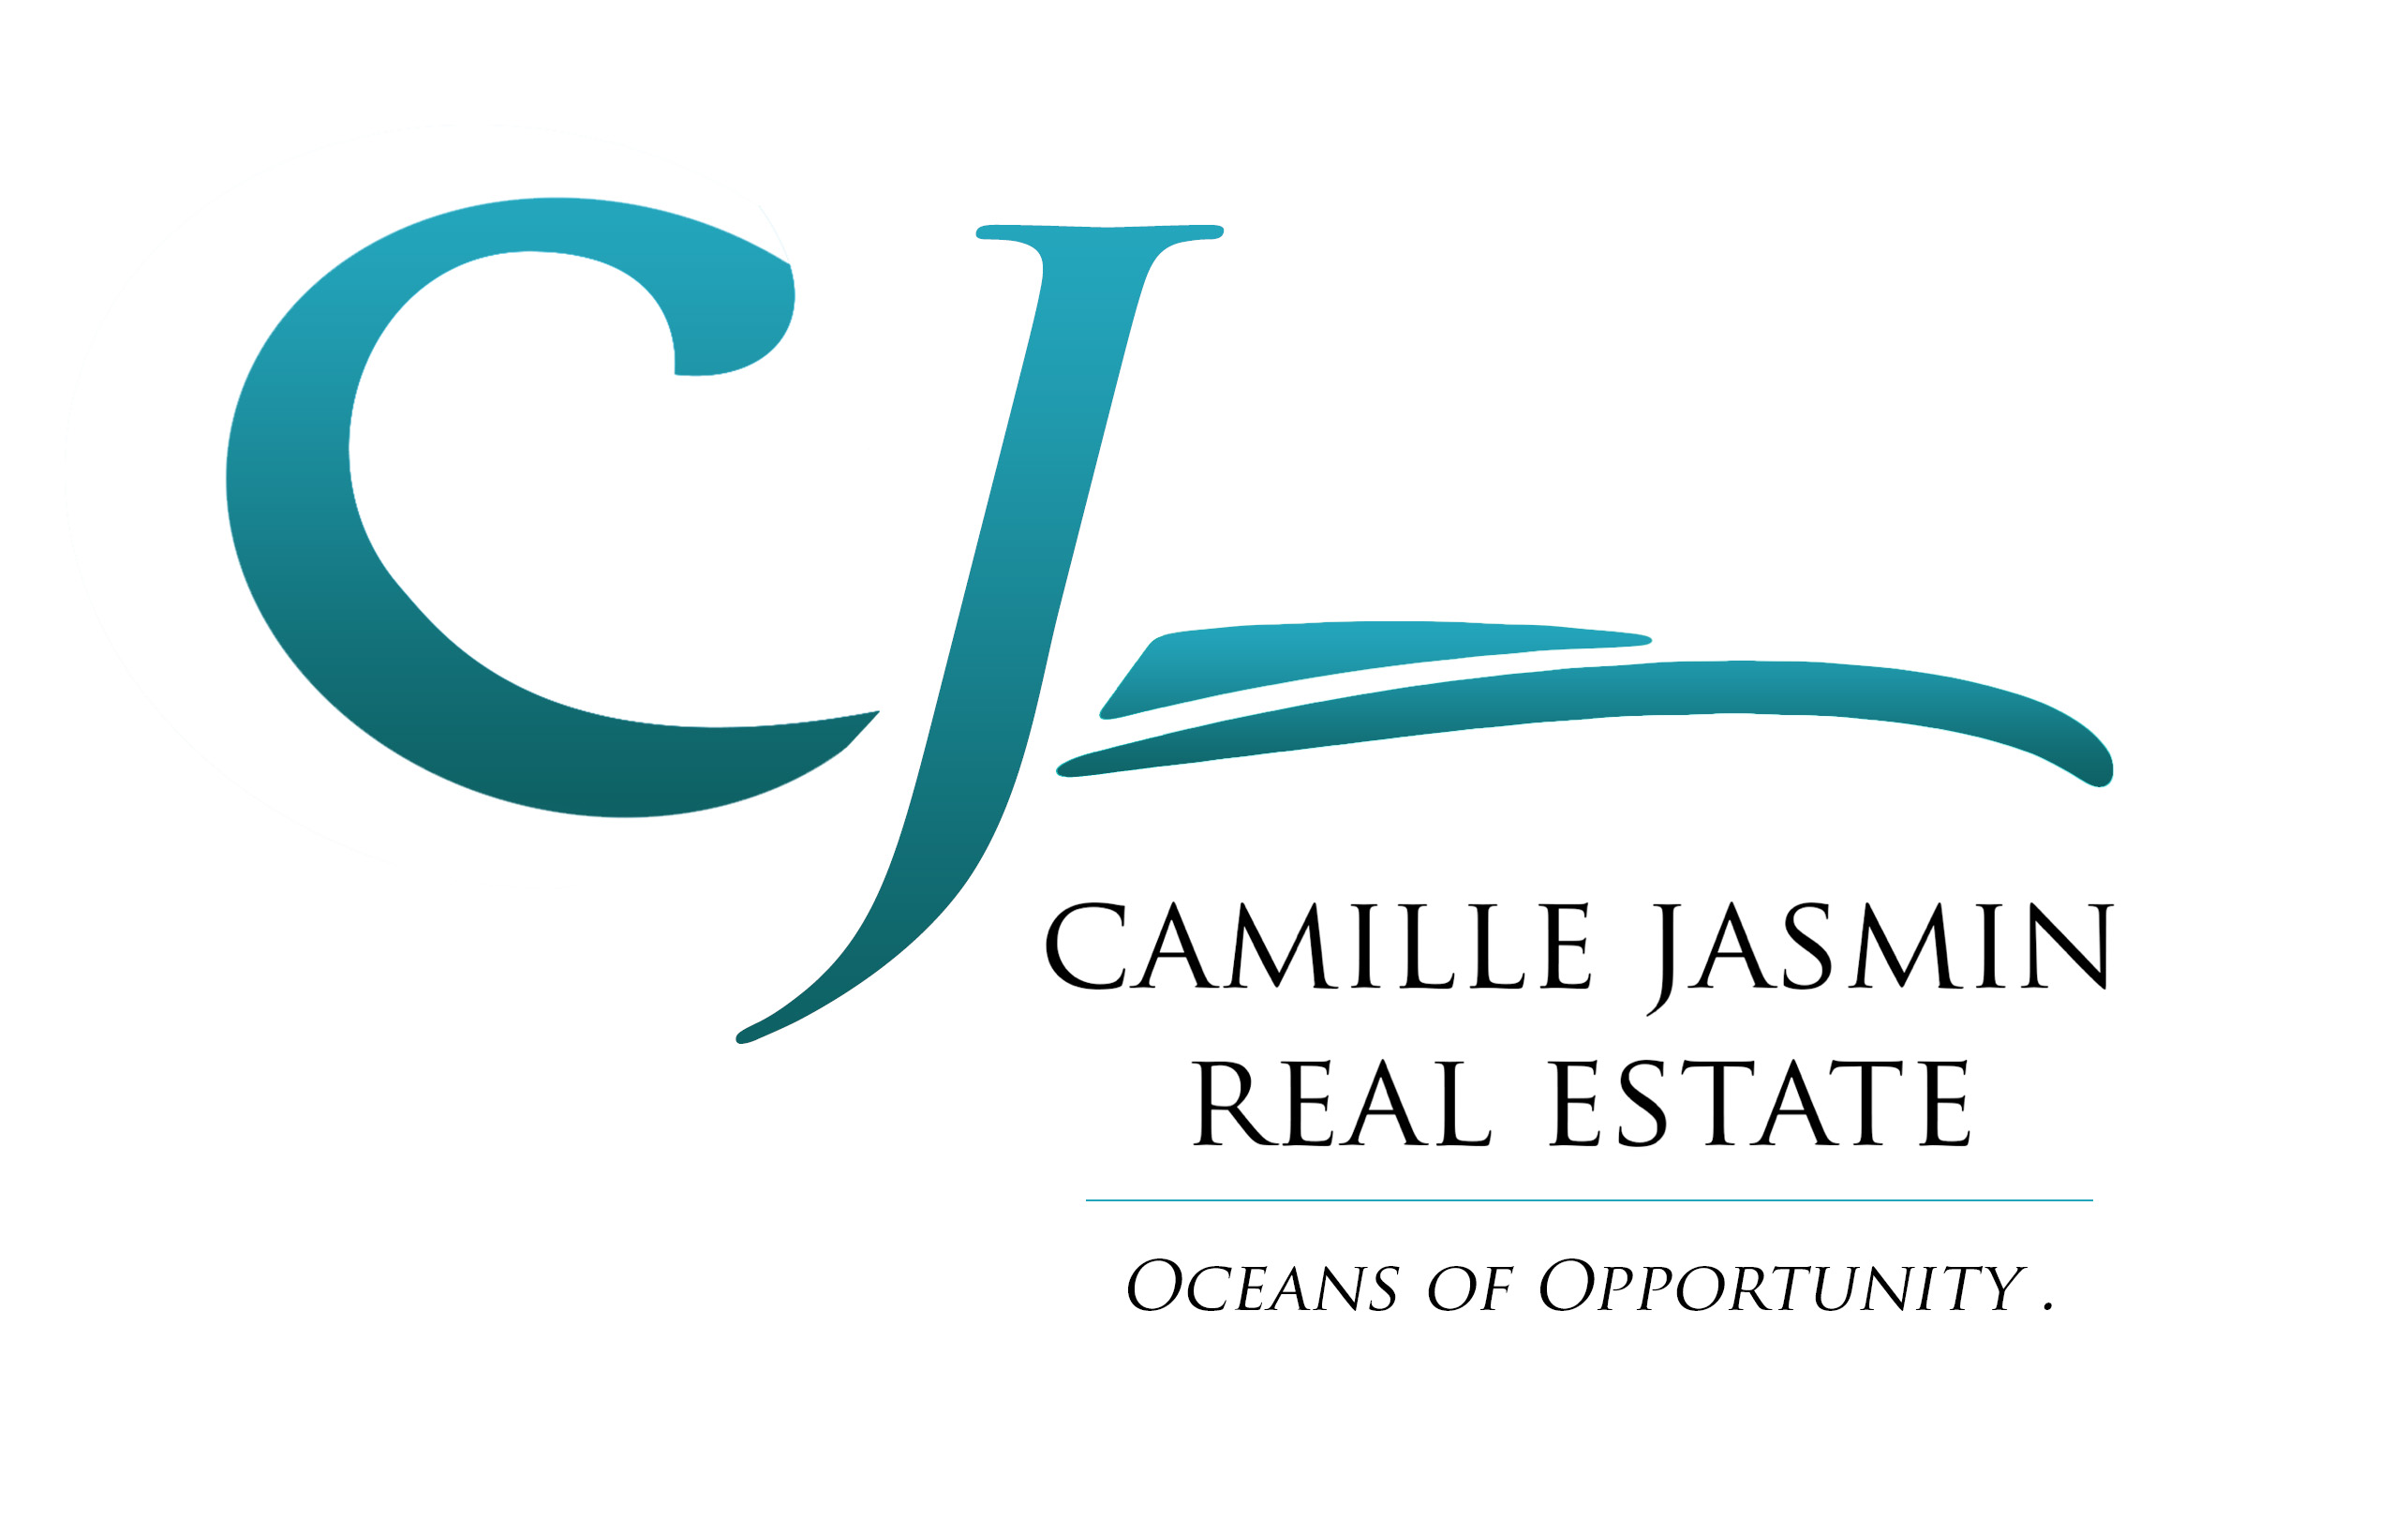 Camille Jasmin Real Estate